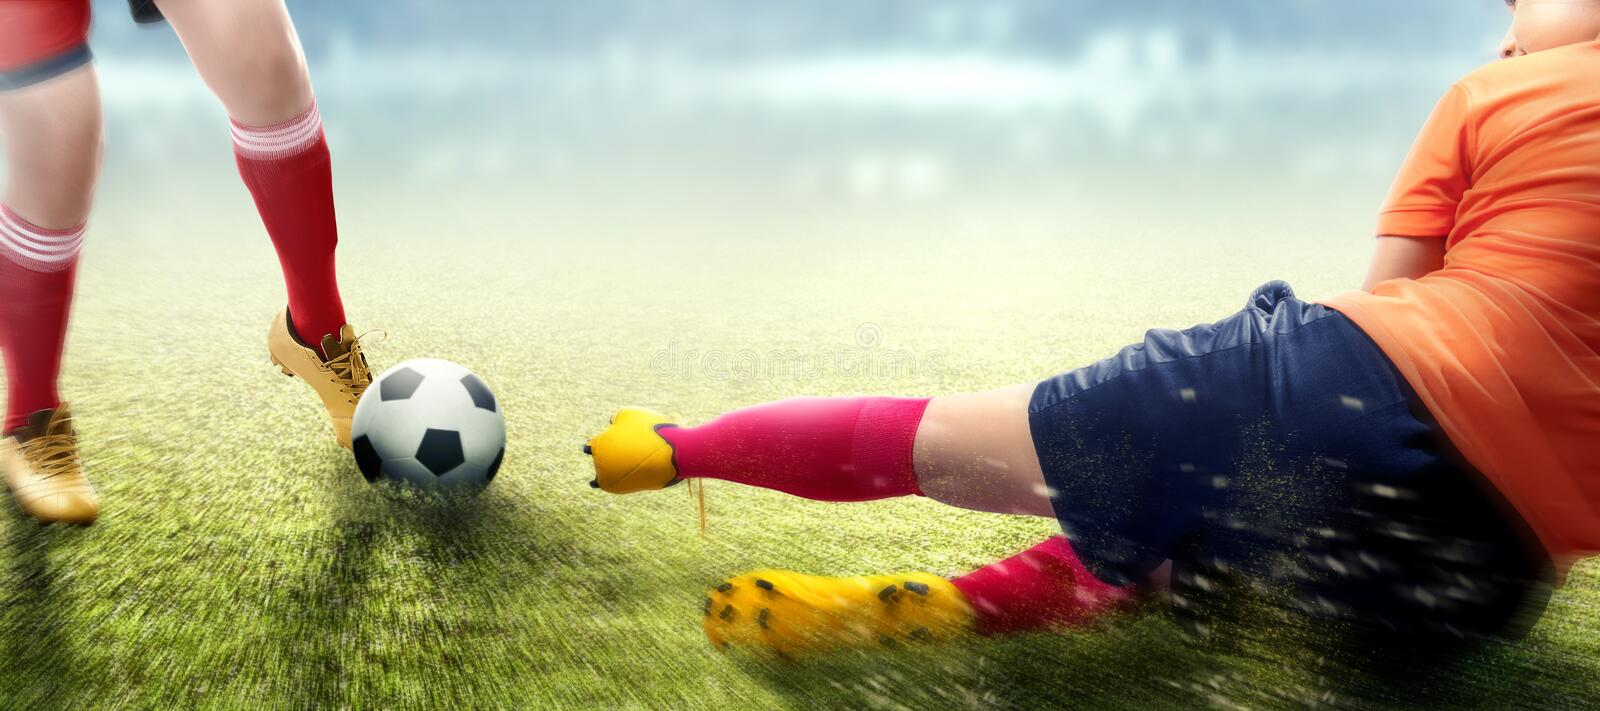 Football player woman in orange jersey sliding tackle the ball from her opponent. On football field stock images